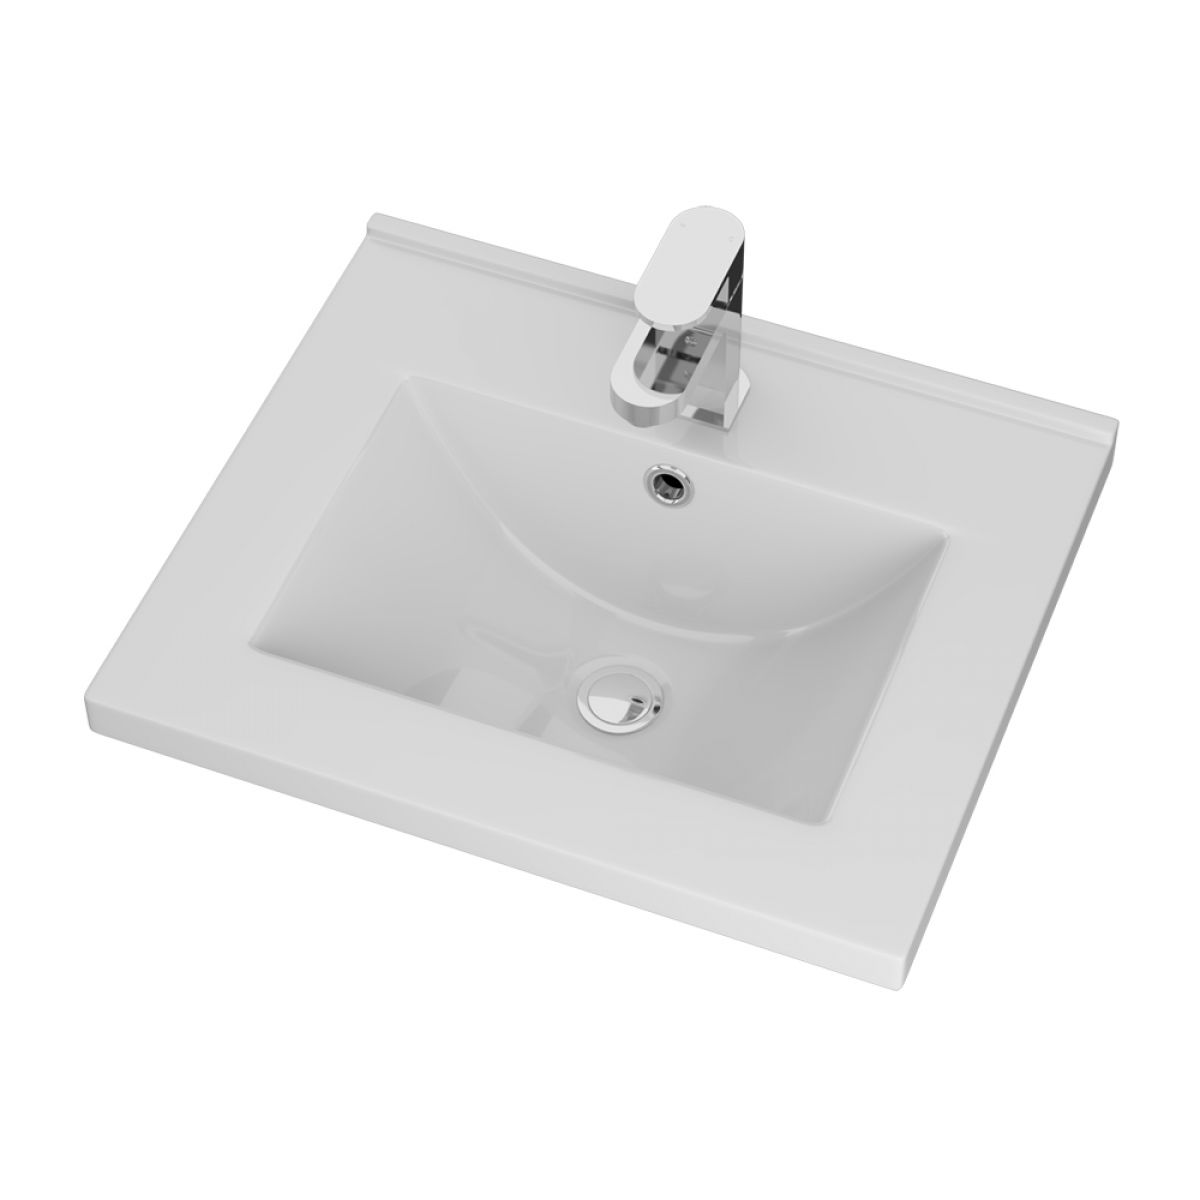 Cassellie Idon Ceramic Mid-Edge Basin 500mm